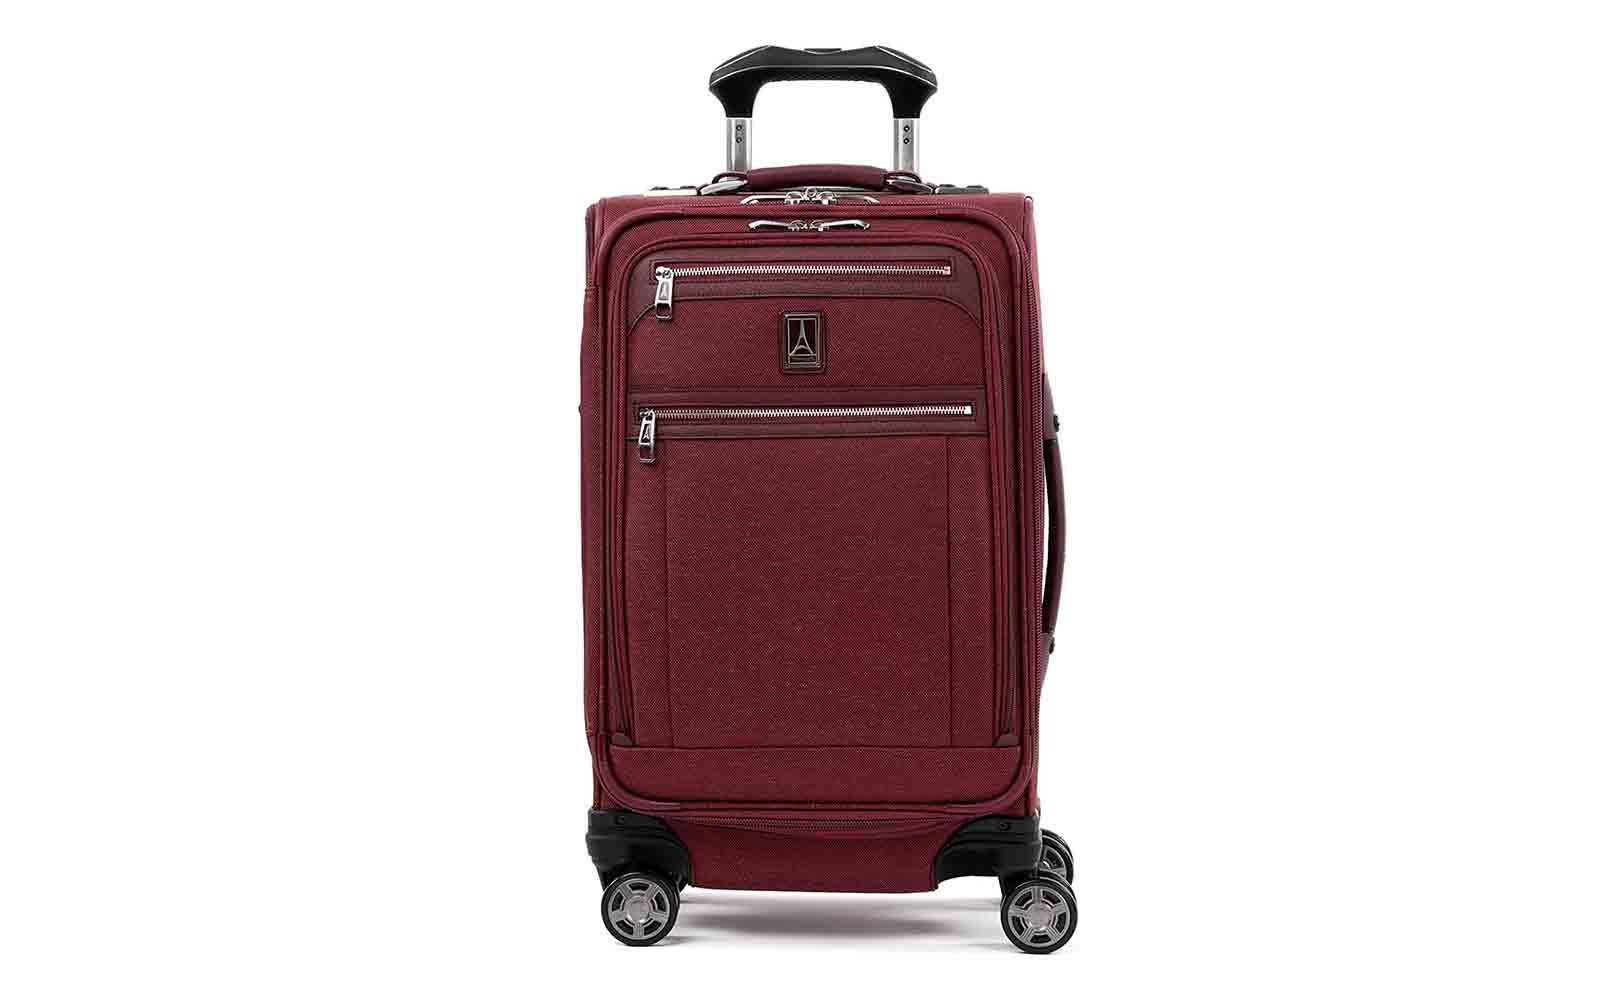 Travelpro Luggage Carry-On